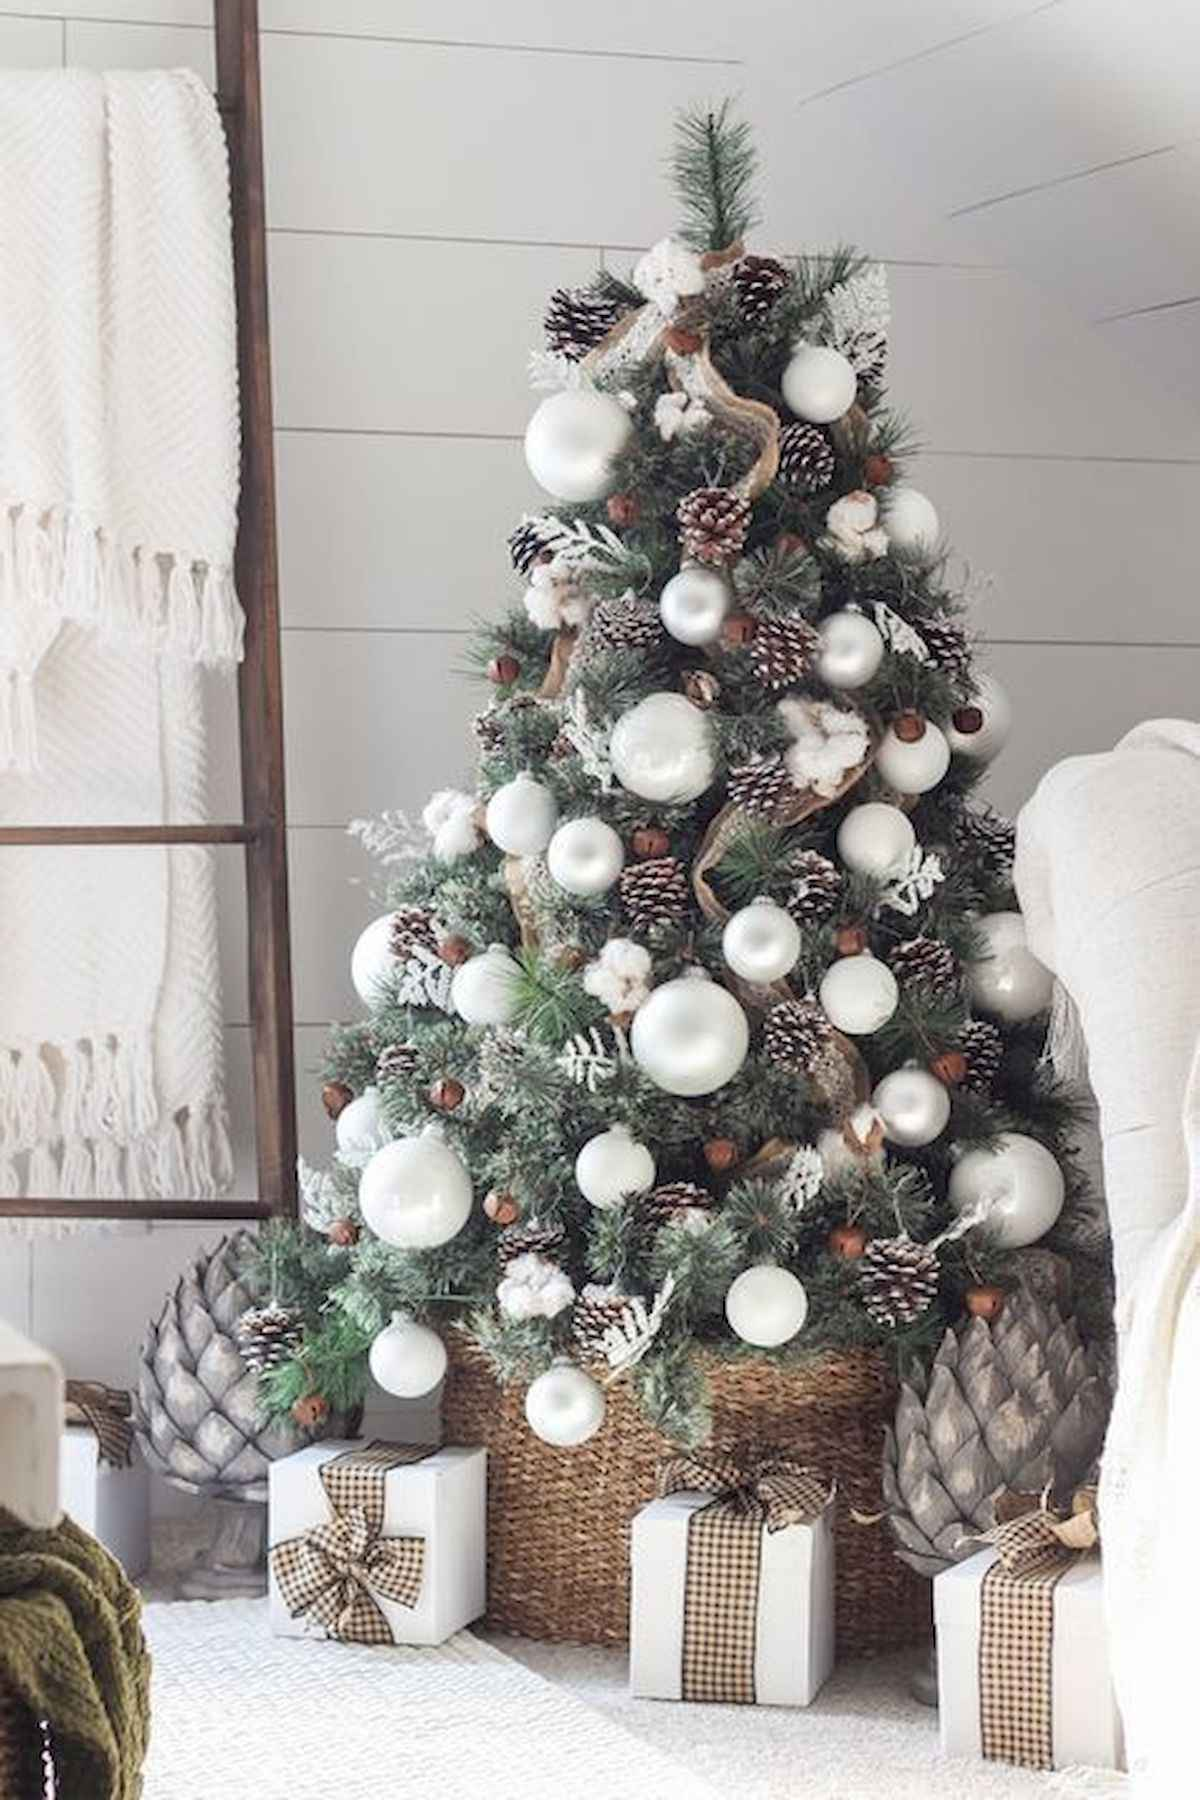 60 awesome christmas tree decorations ideas (38)